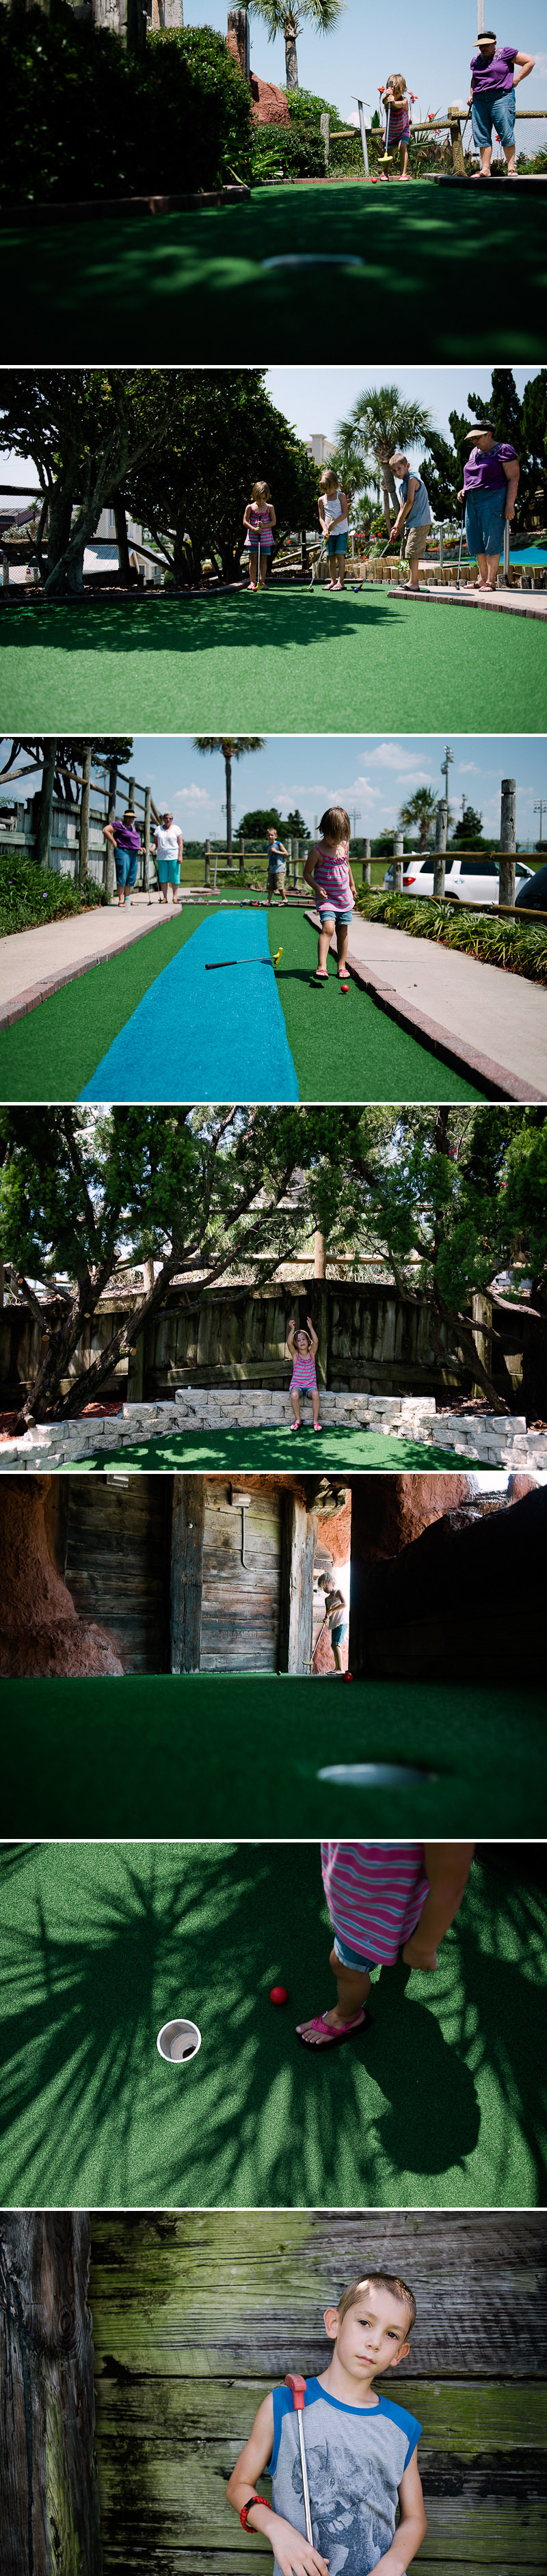 Mini golfing in Destin, Florida.